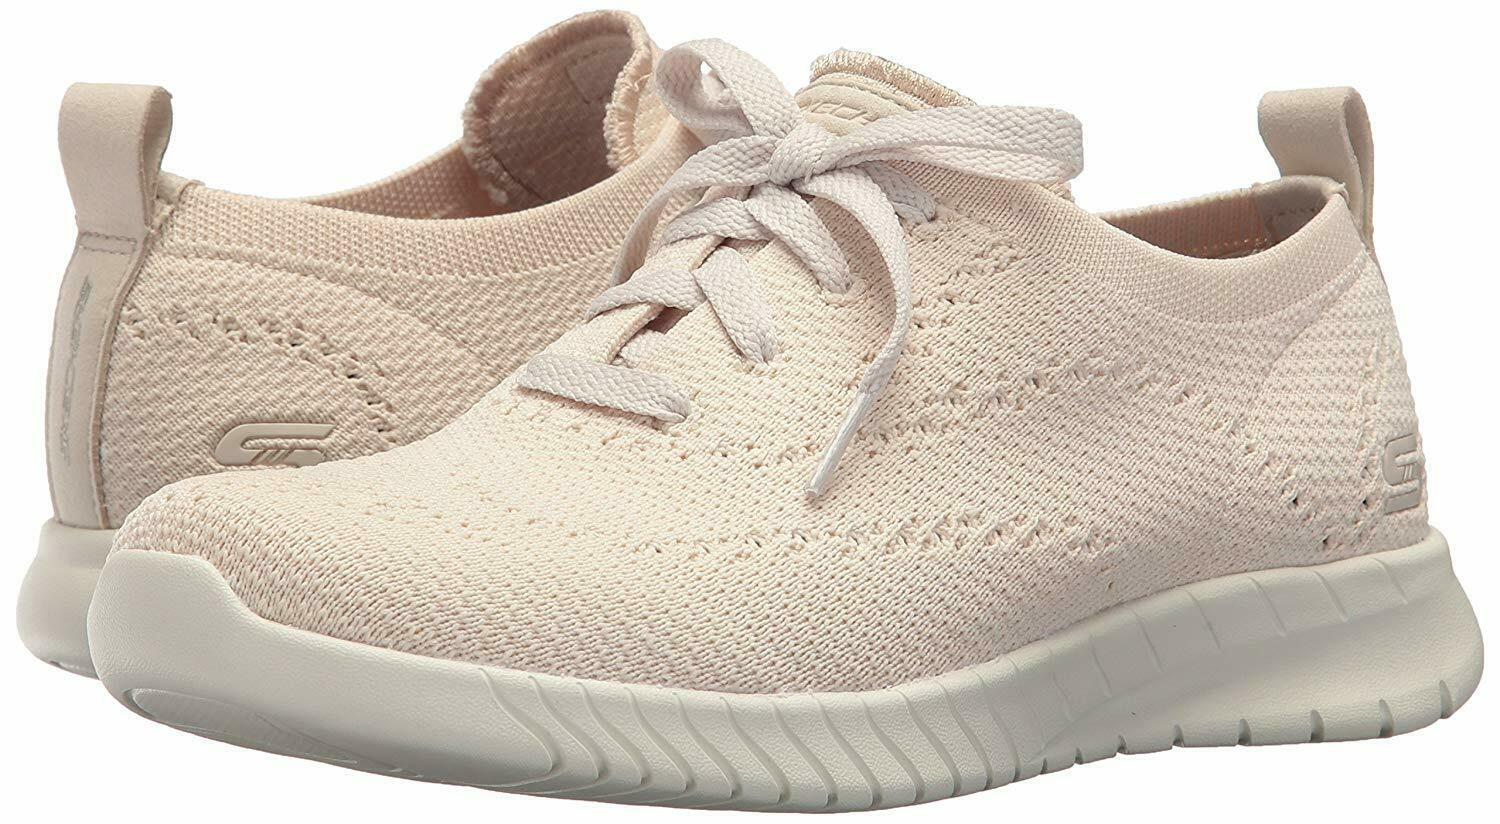 NEW Skechers Womens Natural Mesh Wave Lite-Pretty Philosophy Memory Foam Shoes 9 image 7